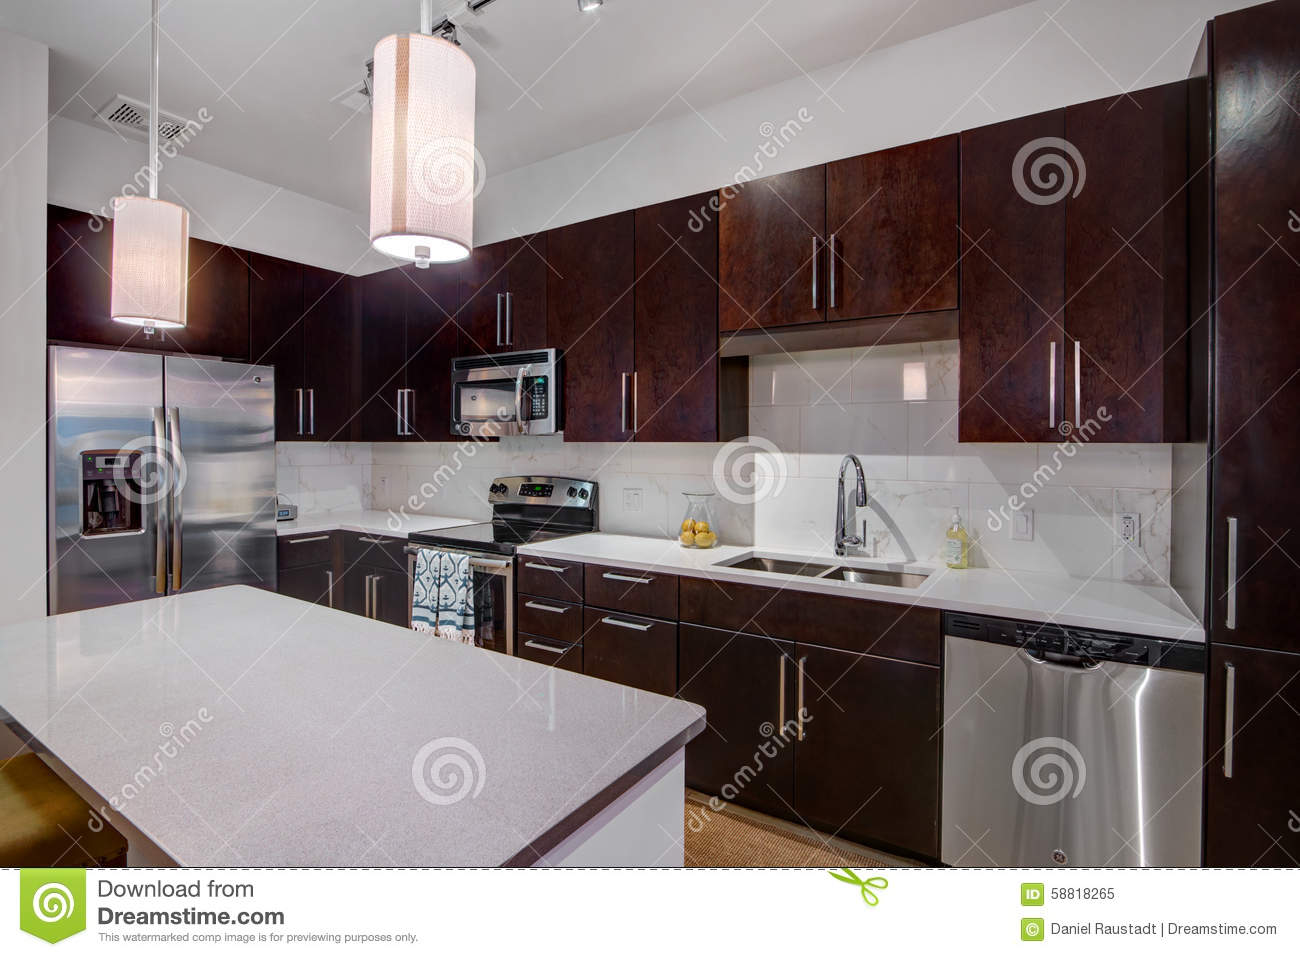 Cuisine moderne d 39 appartement photo stock image 58818265 - Comment recuperer une caution d appartement ...